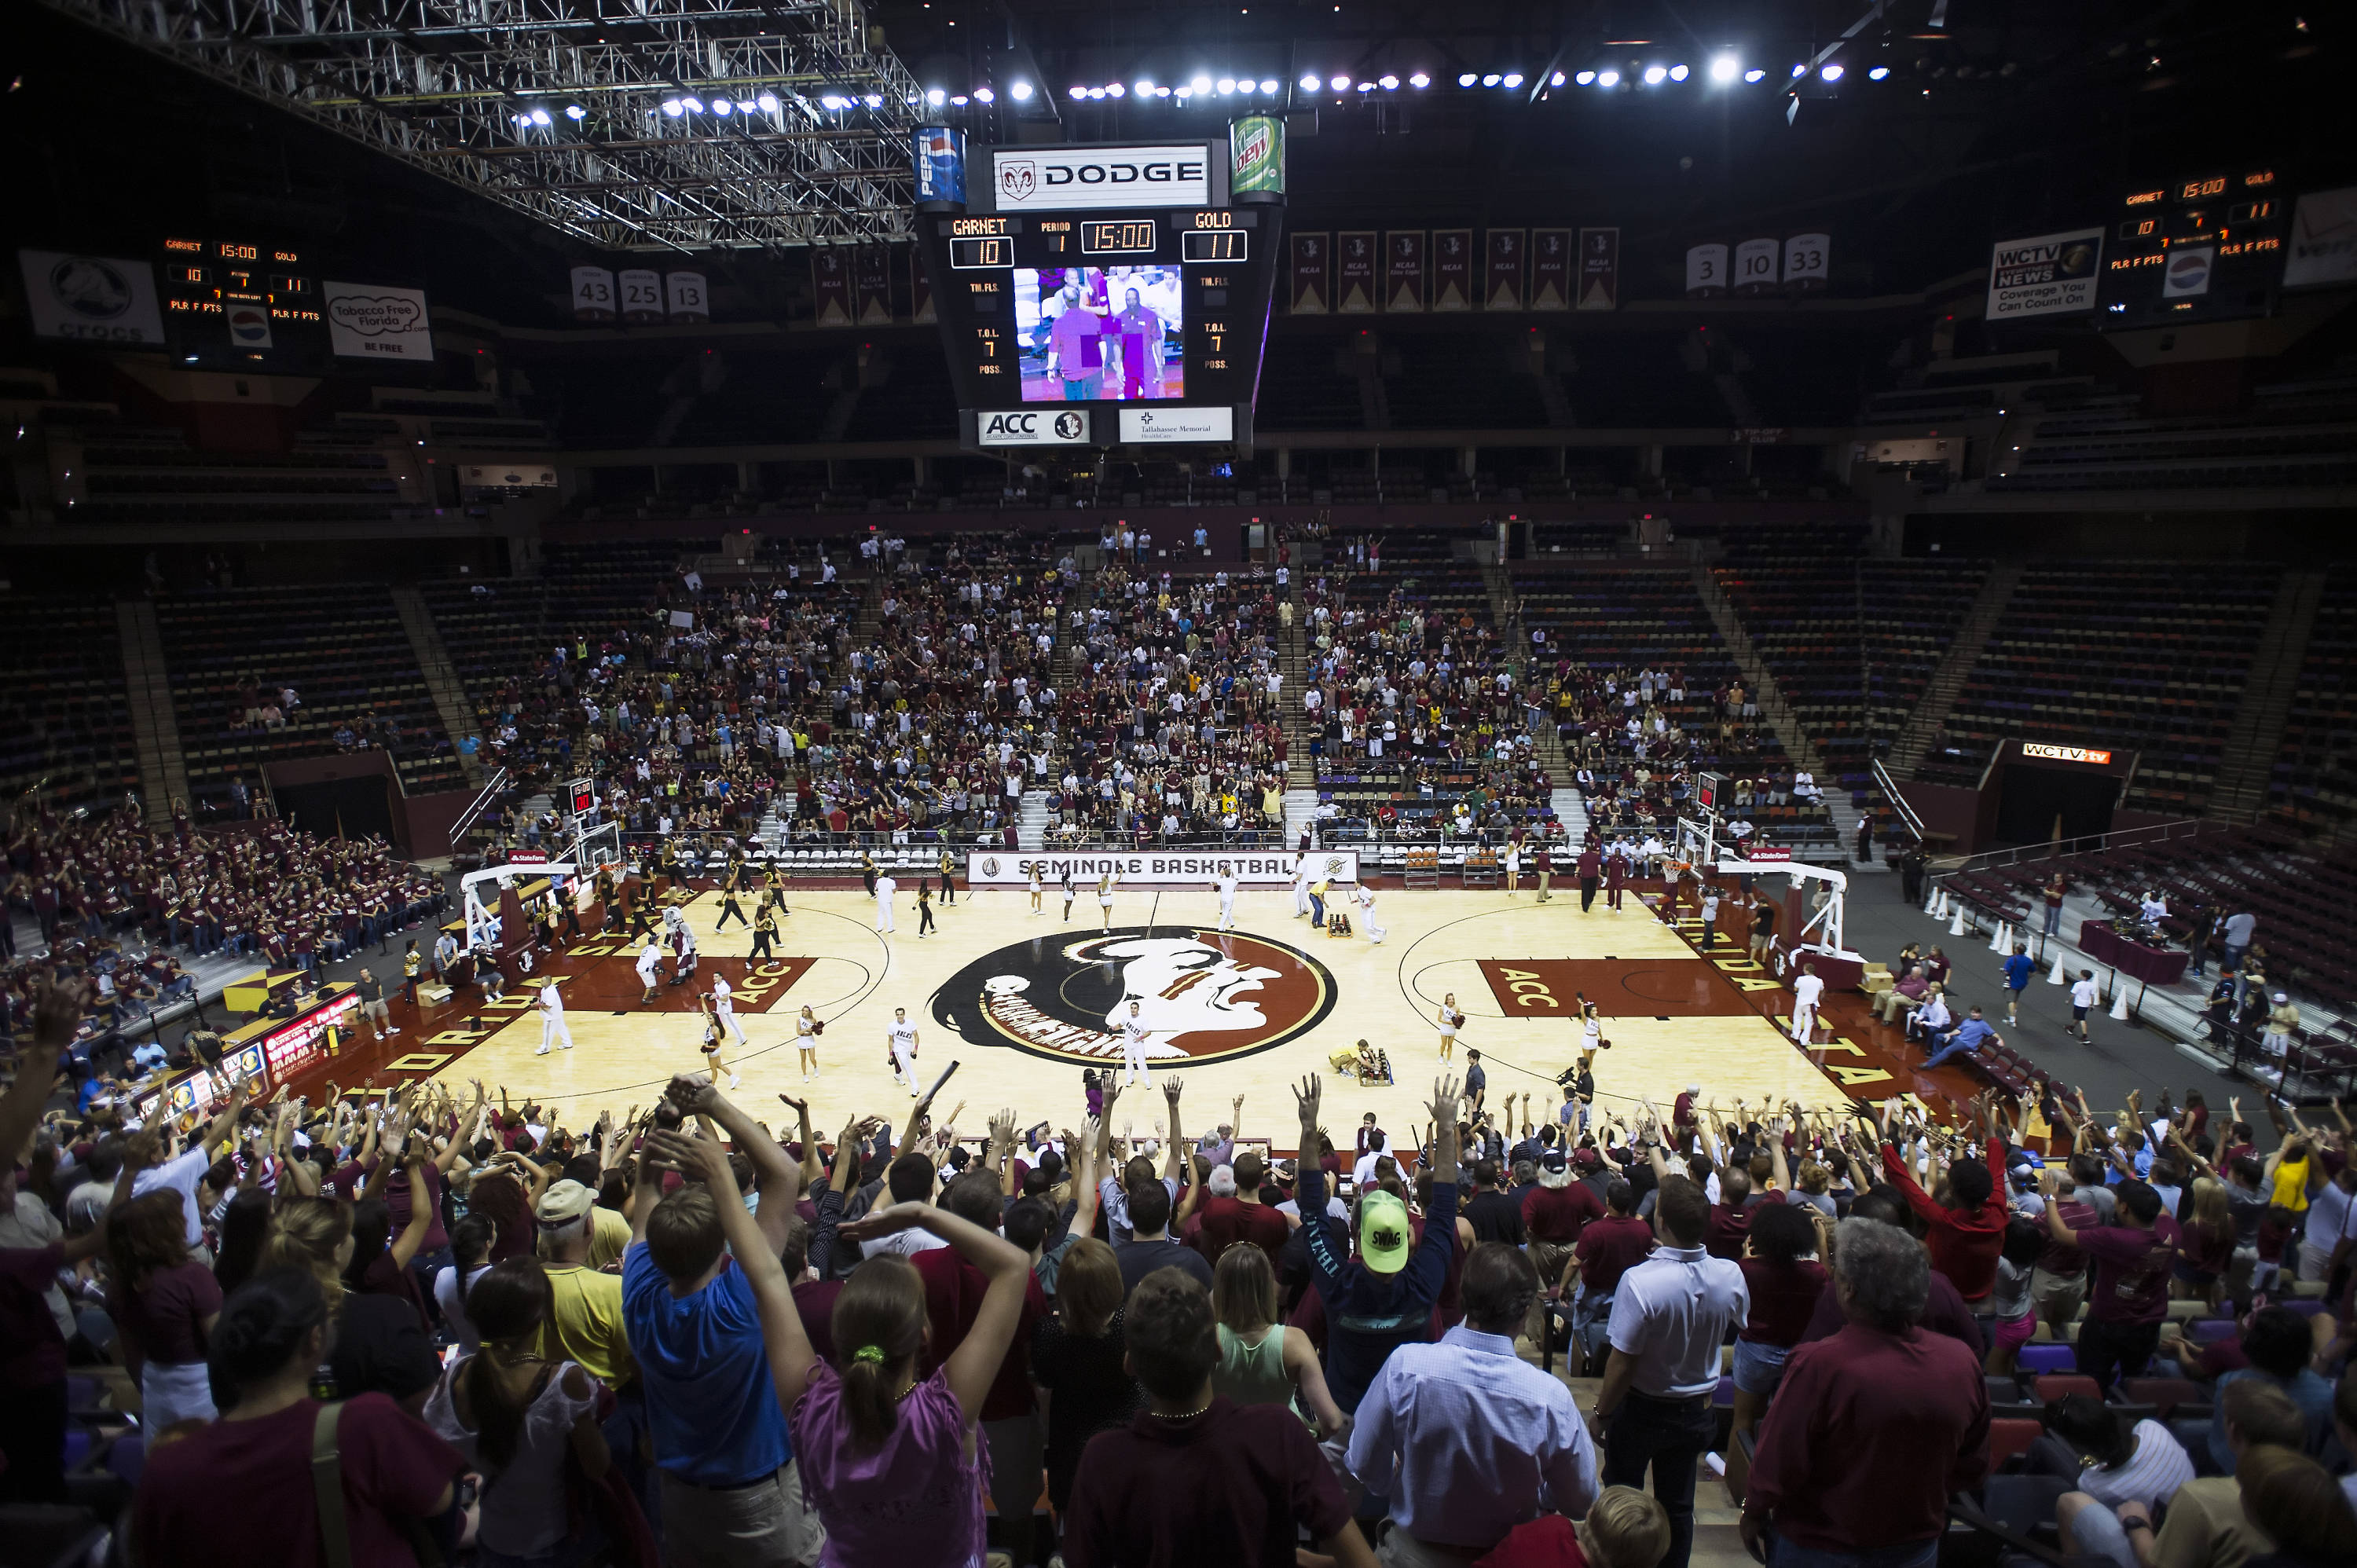 6,500 fans turn out to watch the Seminoles open the basketball season at Seminole Madness